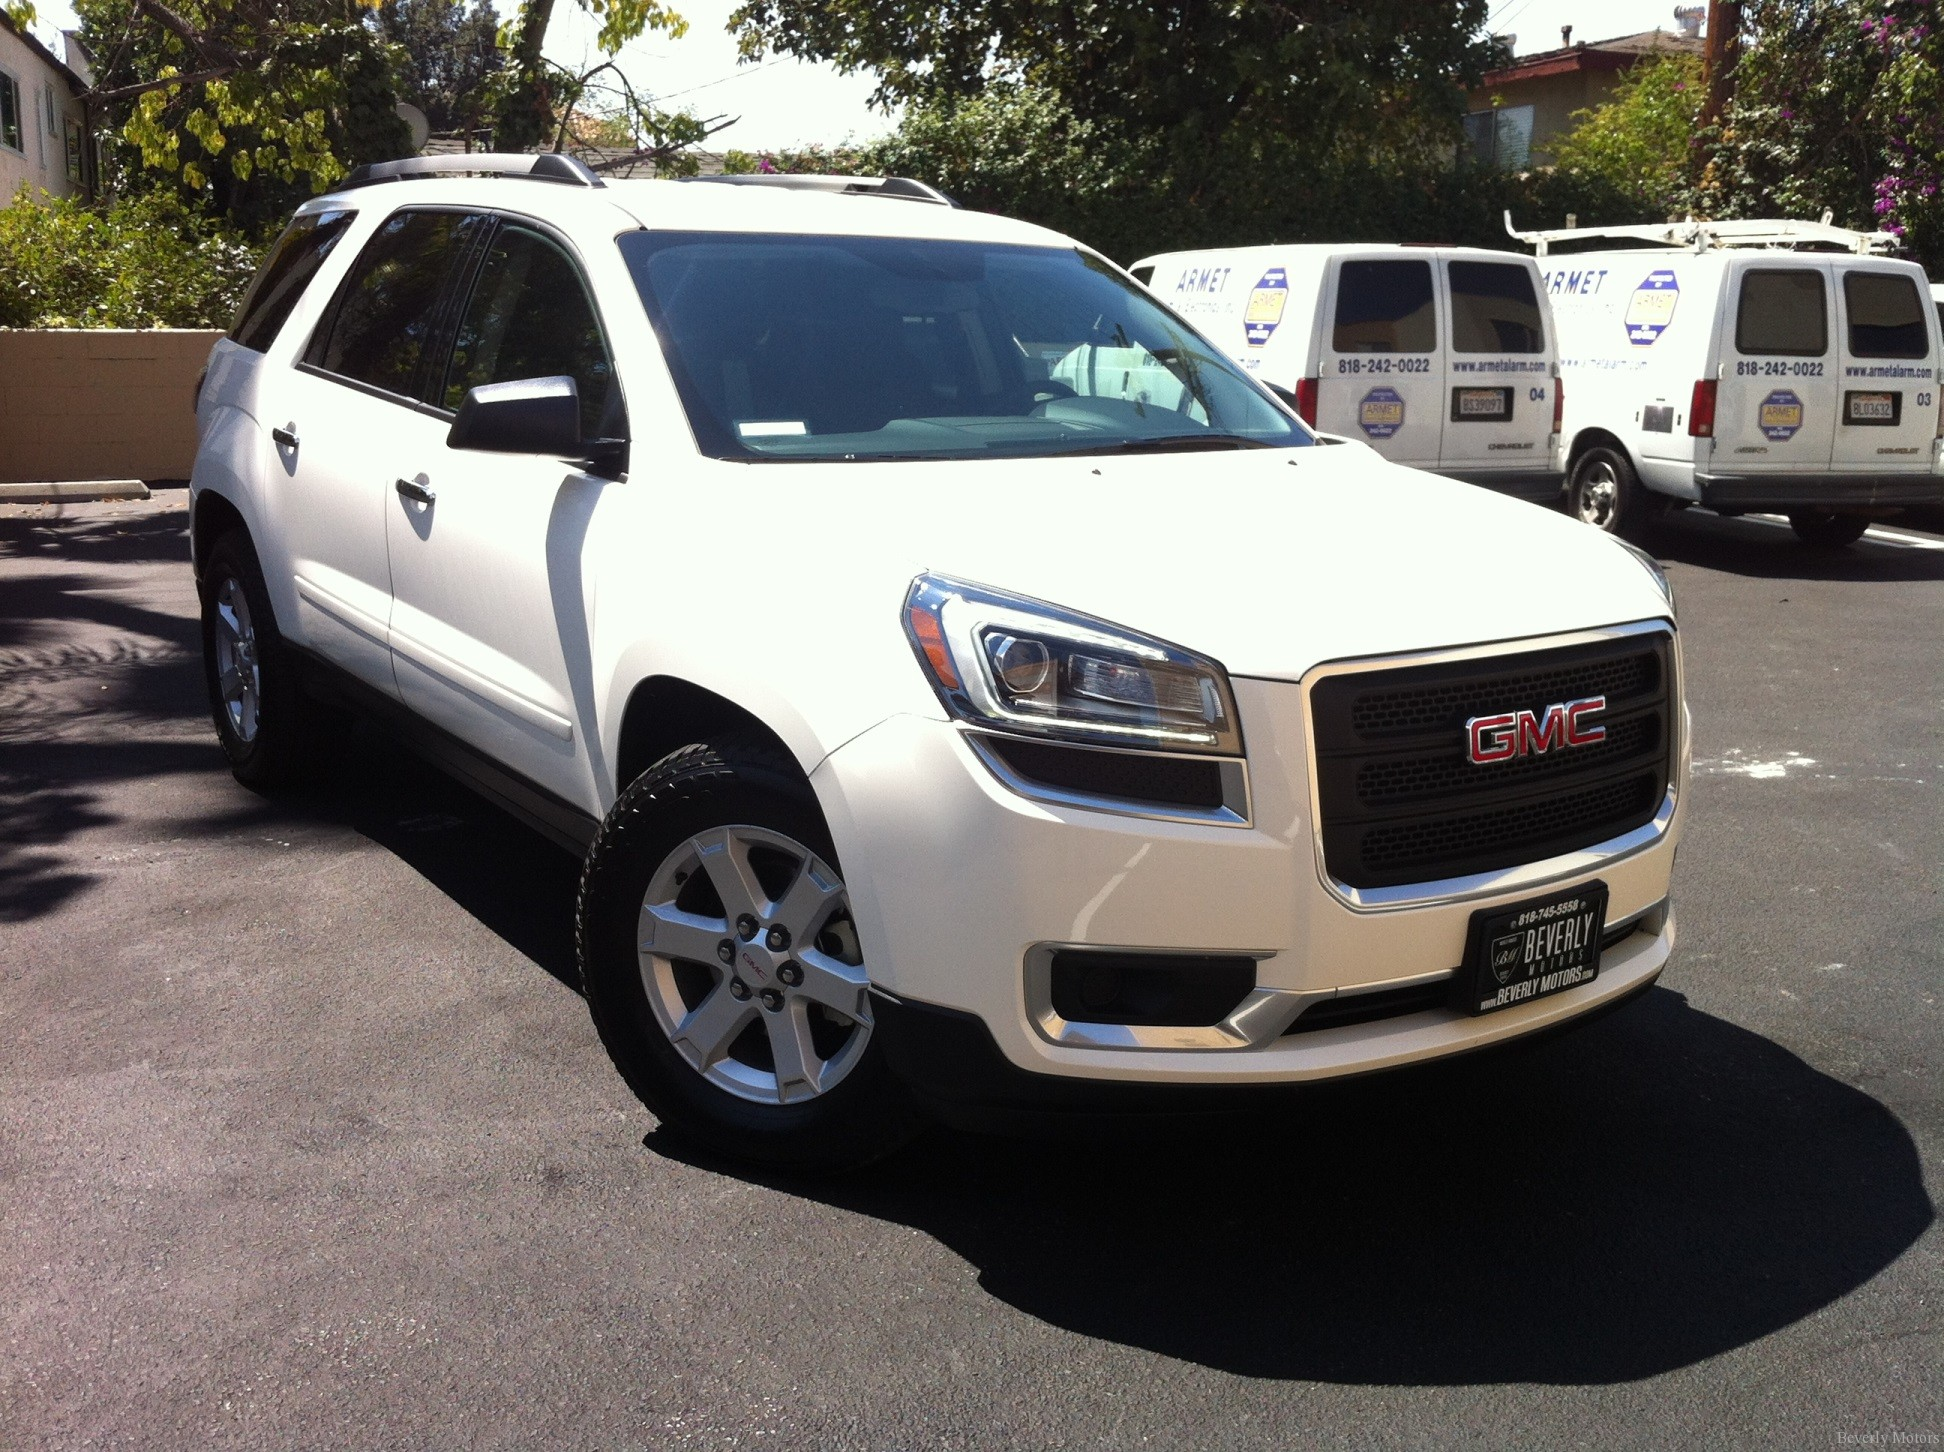 Beverly Motors Inc Glendale Auto Leasing and Sales New Car Lease